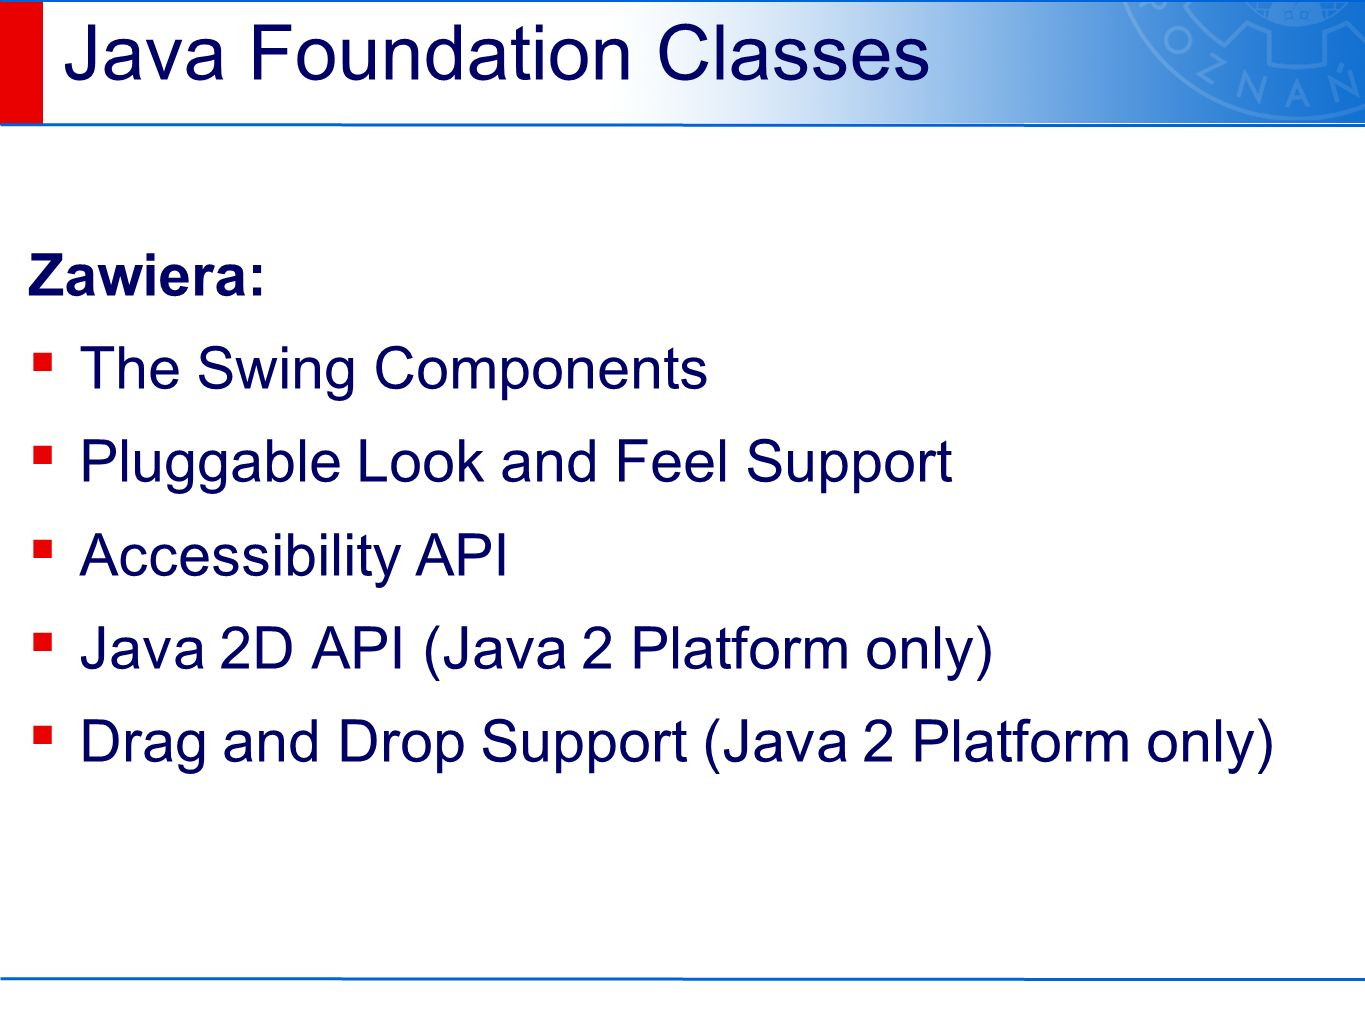 Java Foundation Classes Zawiera: ▪ The Swing Components ▪ Pluggable Look and Feel Support ▪ Accessibility API ▪ Java 2D API (Java 2 Platform only) ▪ Drag and Drop Support (Java 2 Platform only)